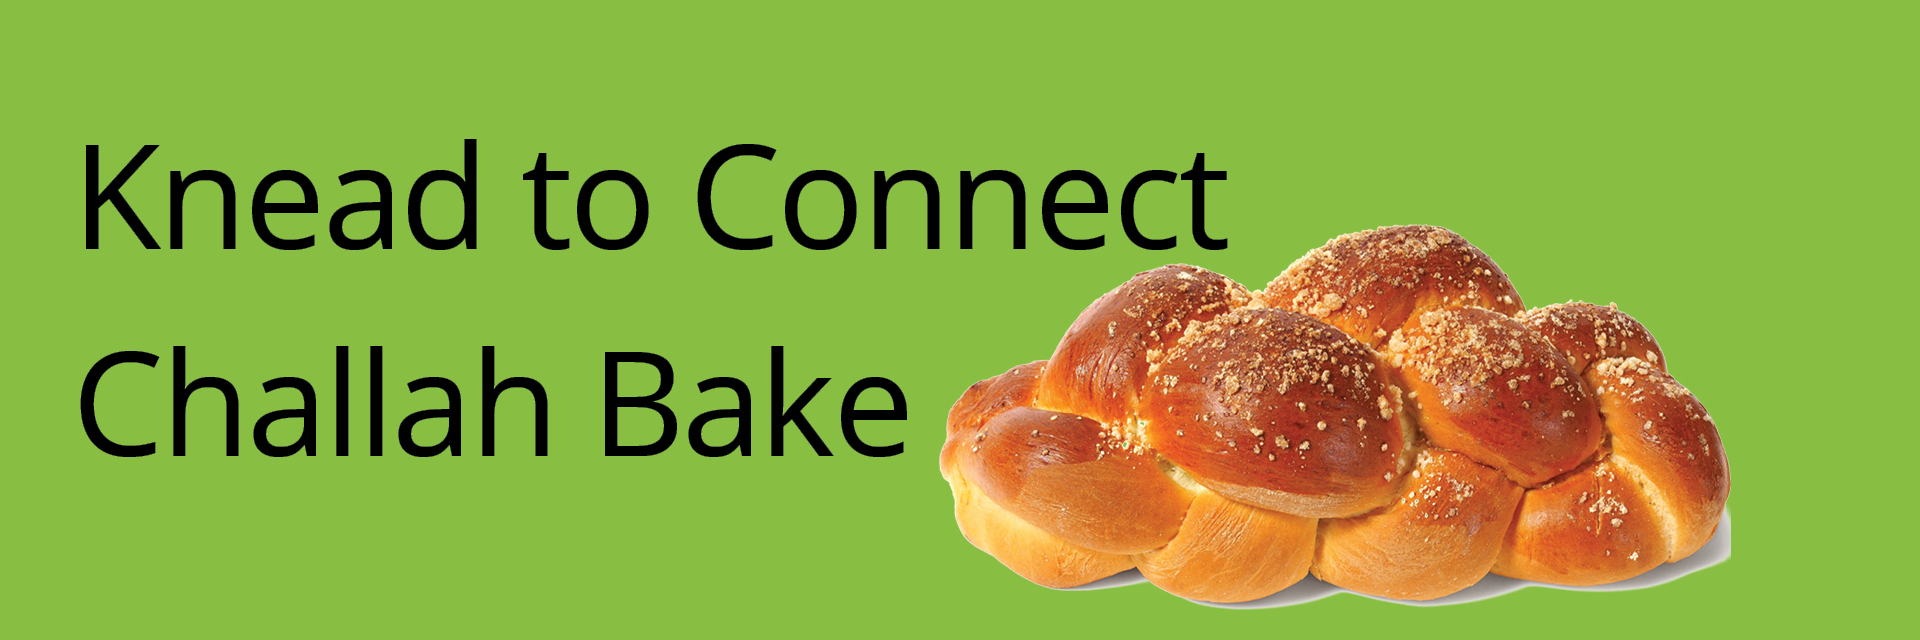 "<a href=""https://www.congkti.org/knead-to-connect-challah-bake.html""